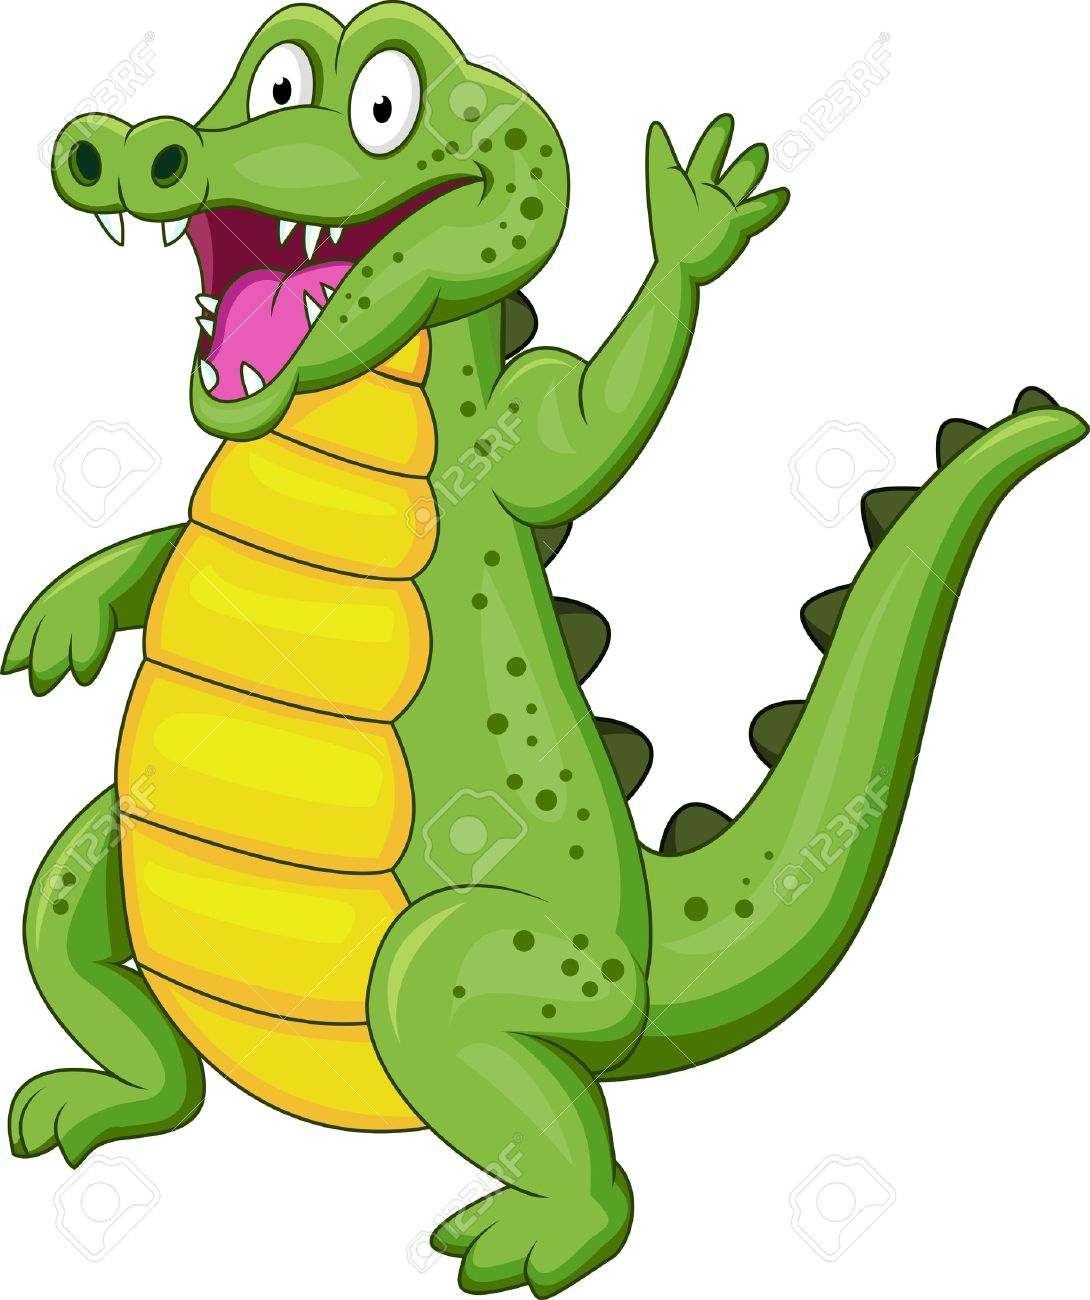 1090x1300 Crocodile Cartoon Royalty Free Cliparts, Vectors, And Stock